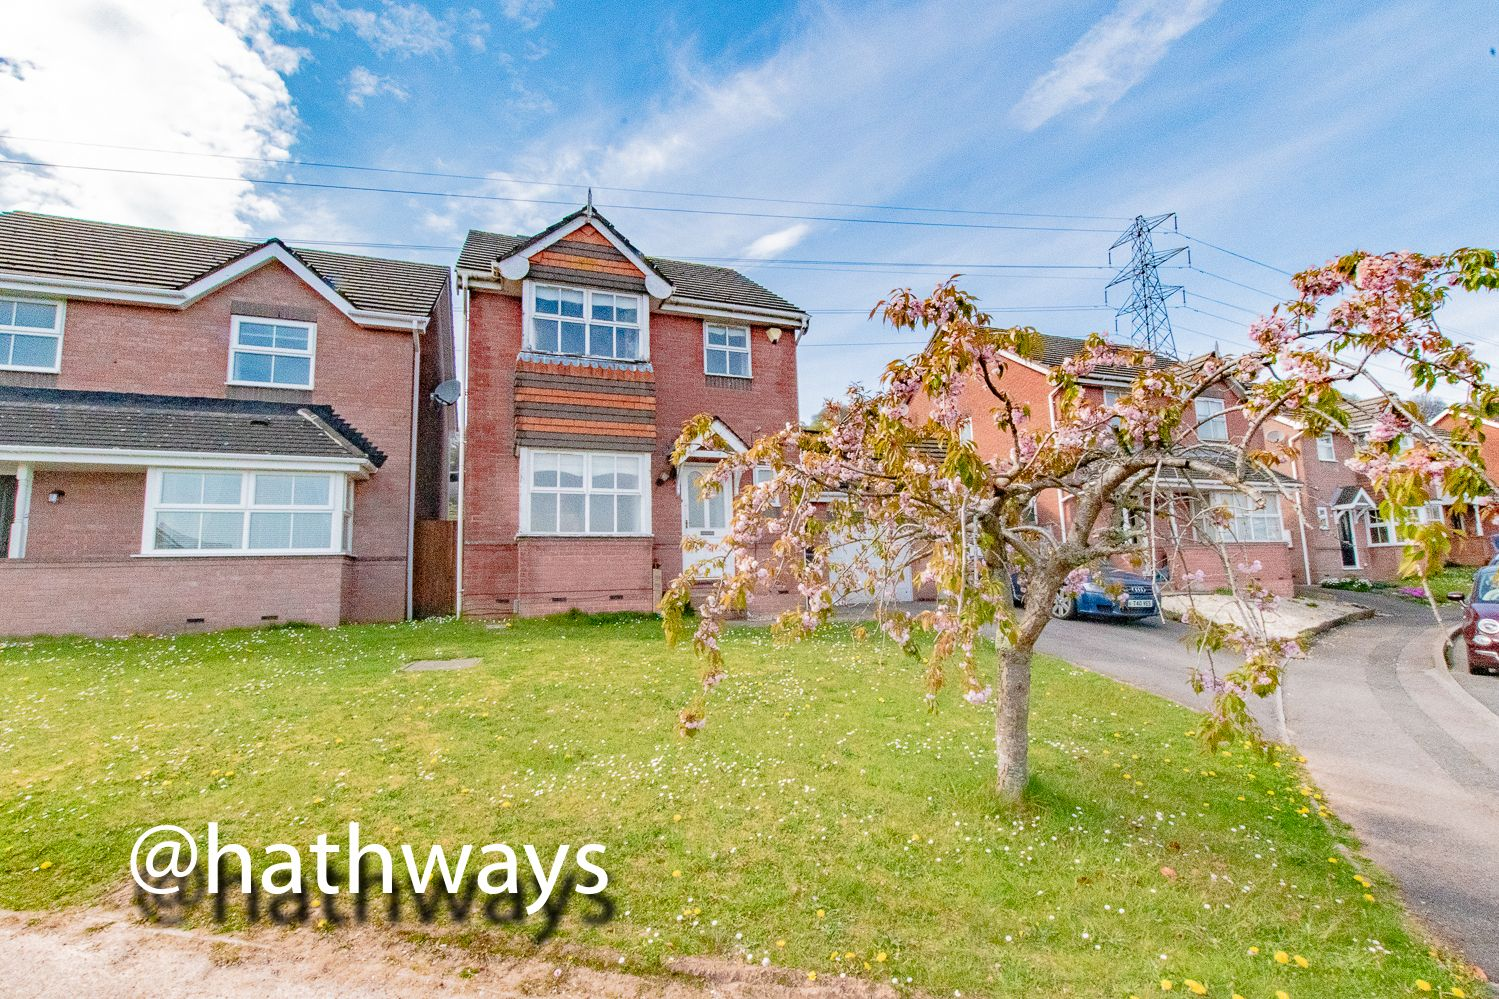 3 bed house for sale in Hawkes Ridge, NP44